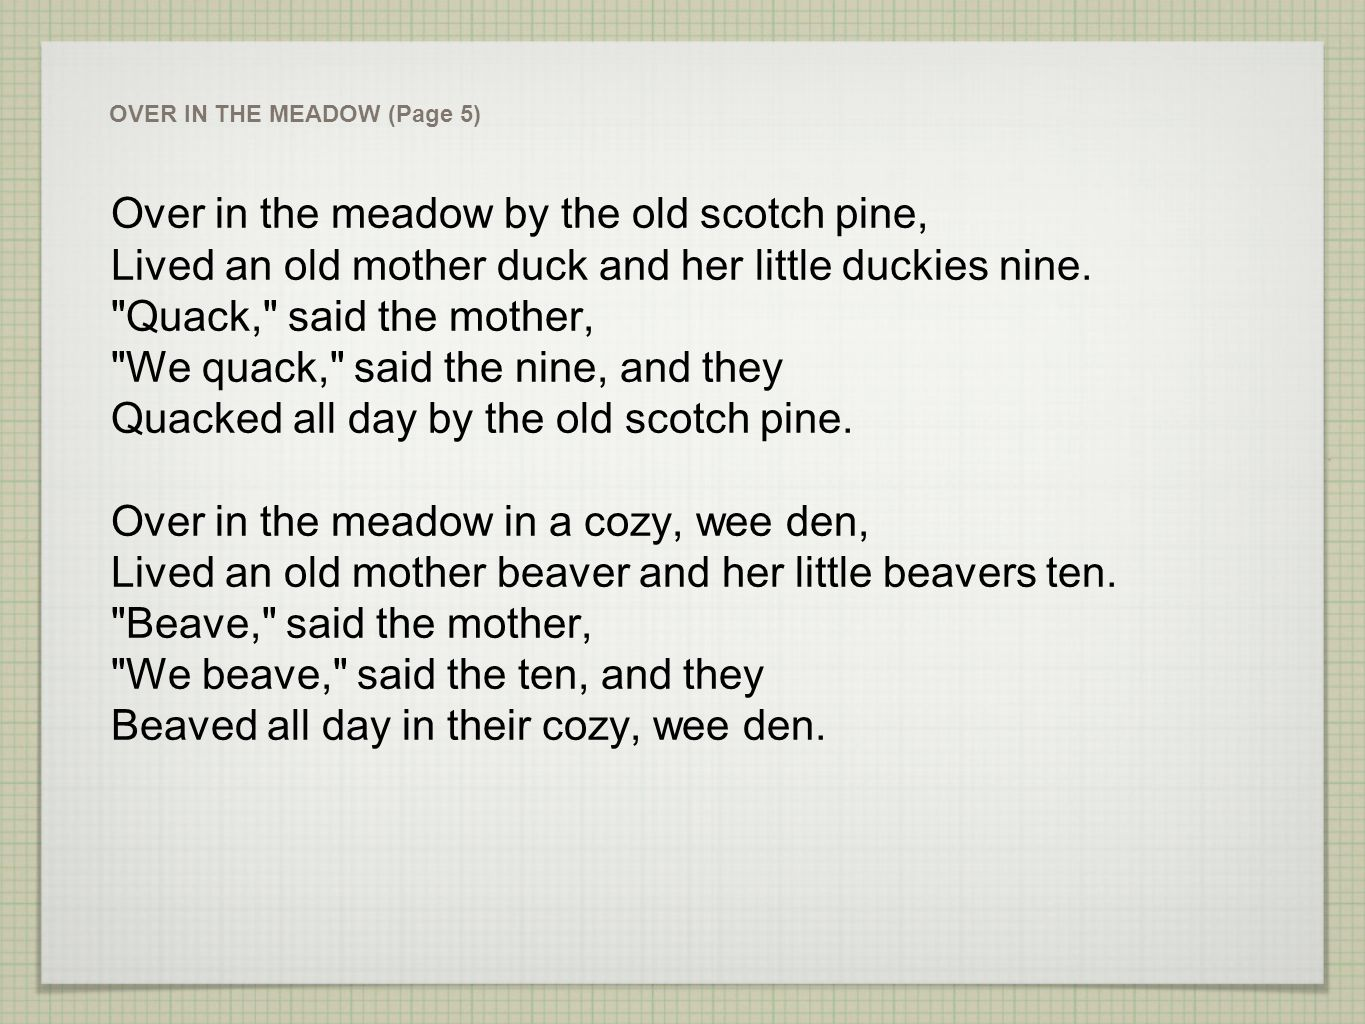 Over in the meadow by the old scotch pine, Lived an old mother duck and her little duckies nine.